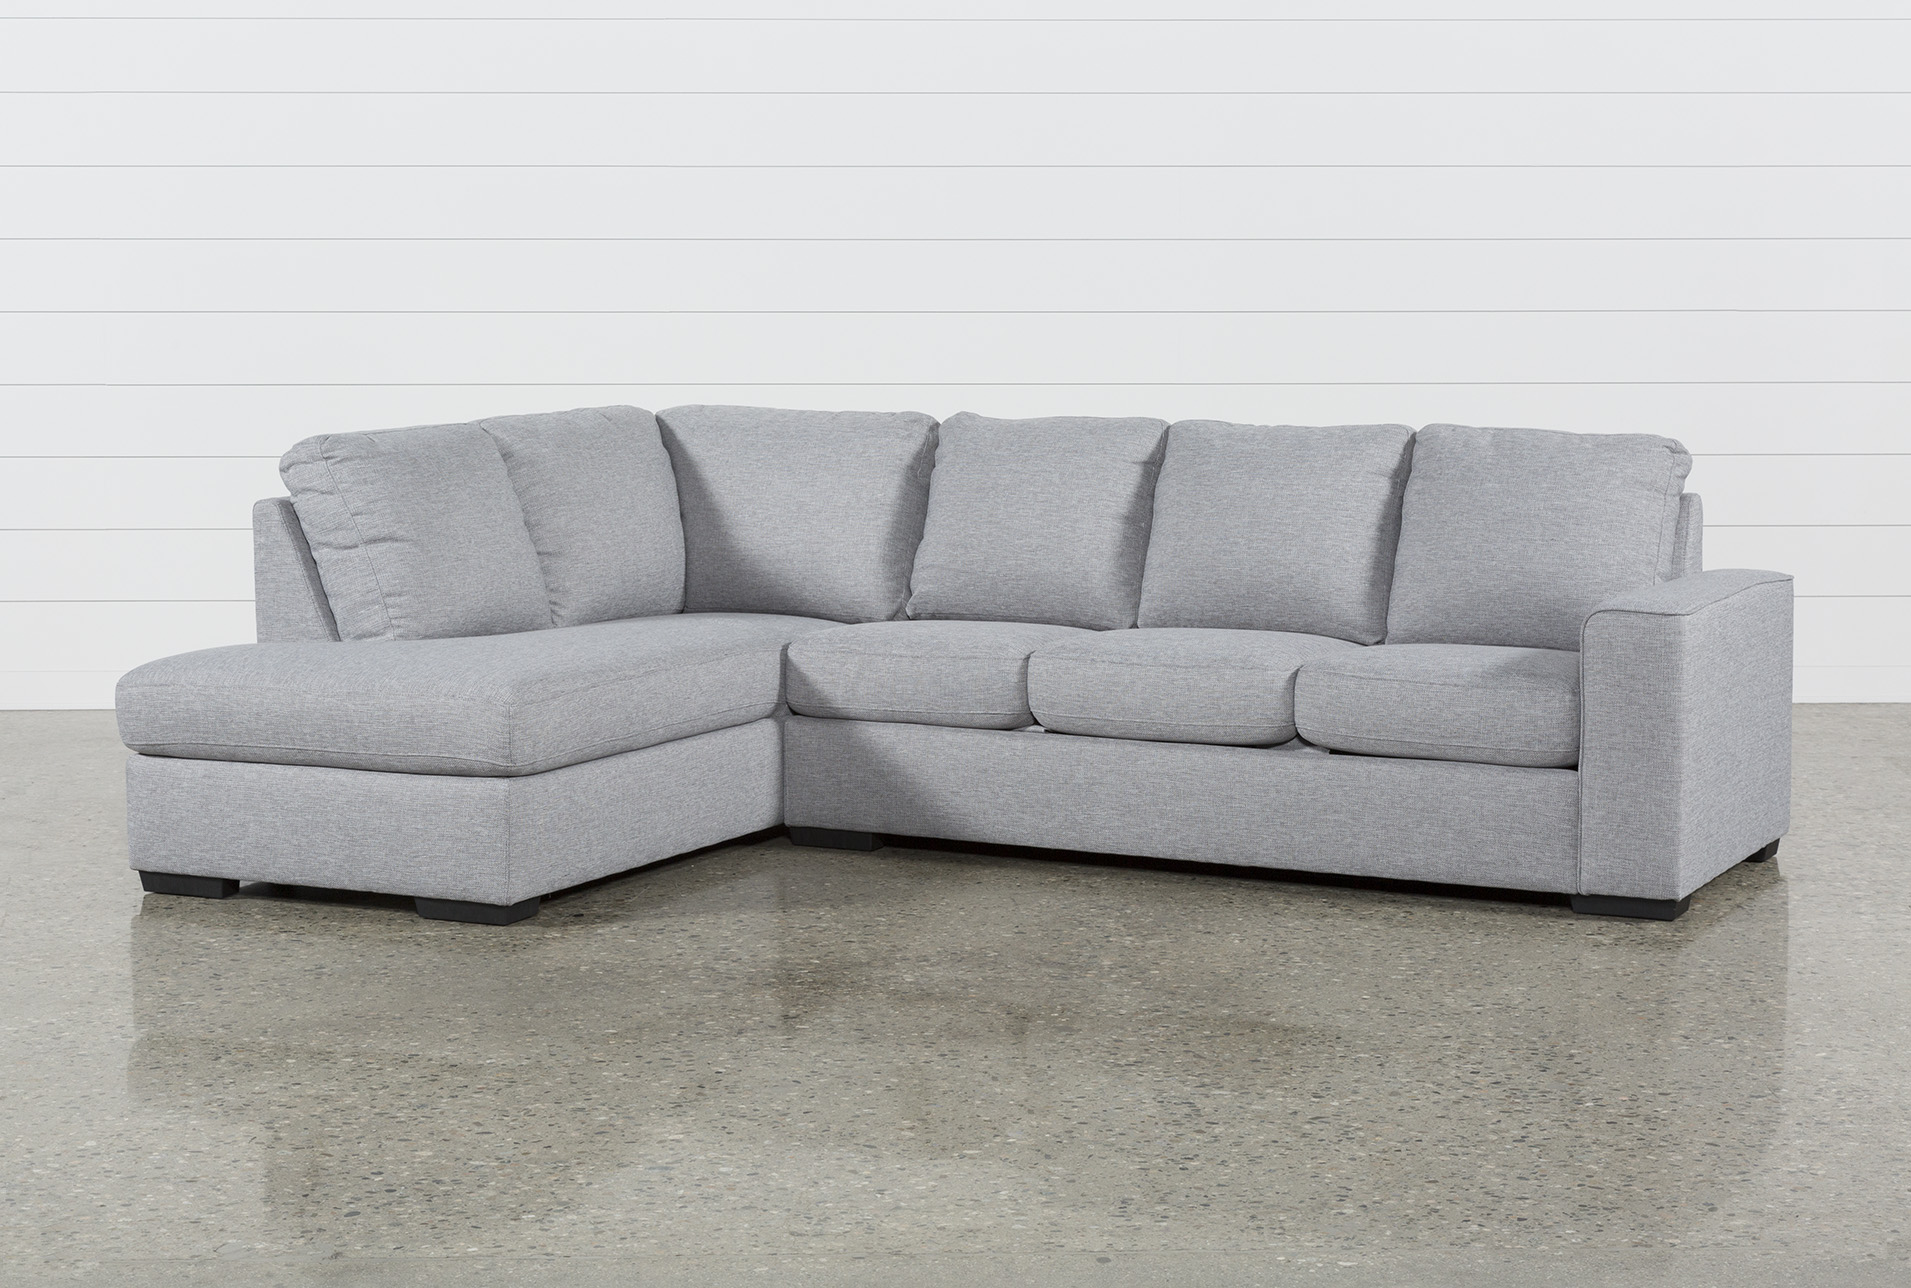 Lucy Grey 2 Piece Sleeper Sectional W/Laf Chaise (Qty: 1) Has Been  Successfully Added To Your Cart.